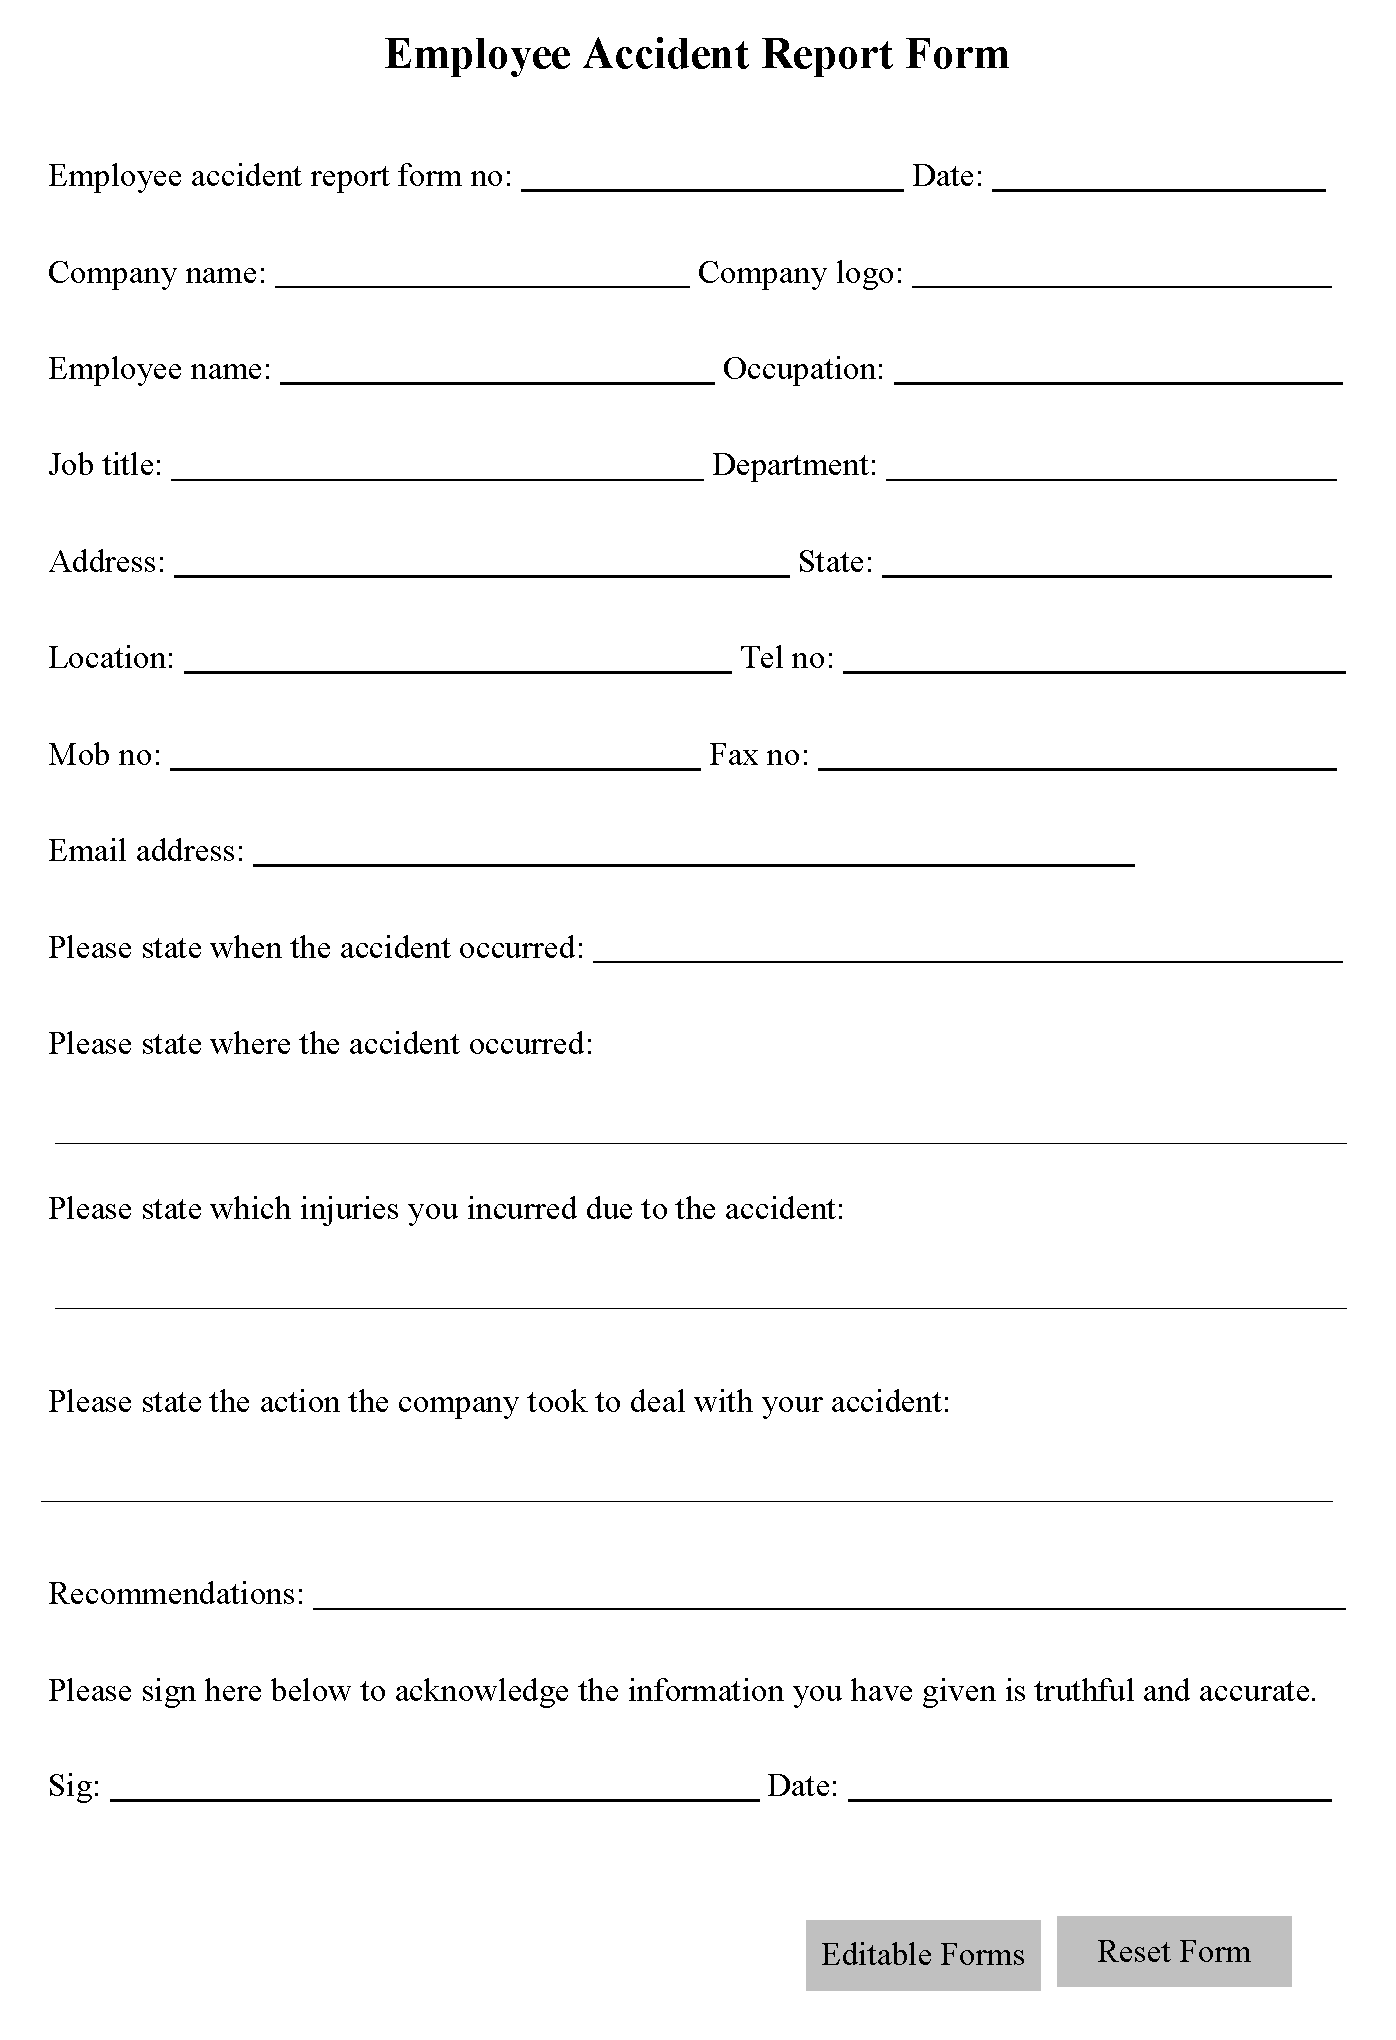 doc report form template doc accident doc11961548 accident report form template doc12751650 report form template